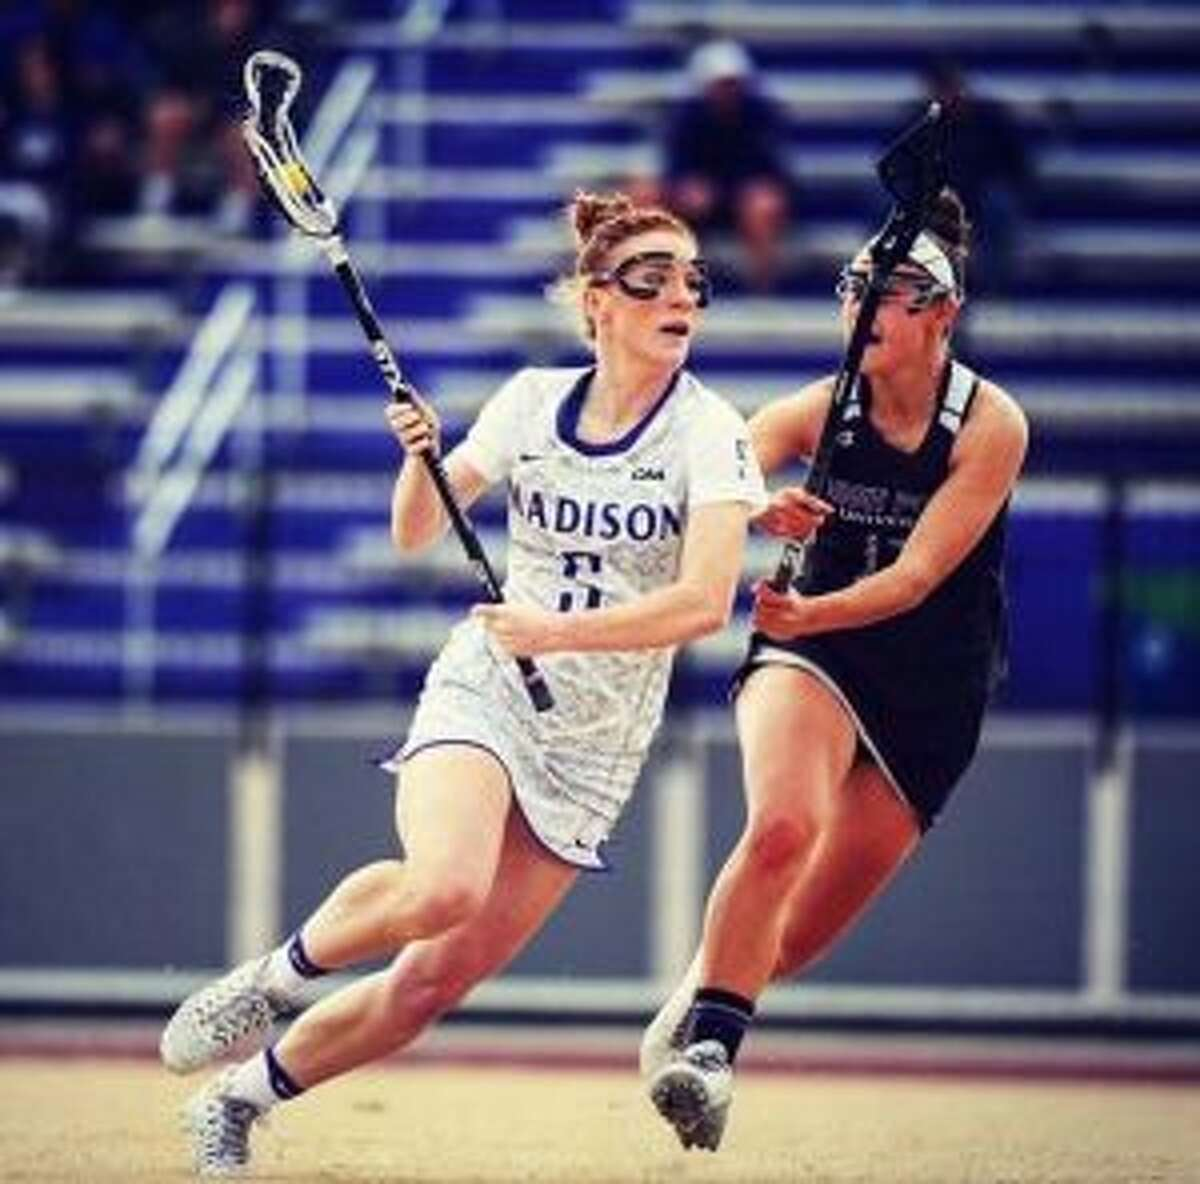 Shannon Quinlan goes on the attack during James Madison women's lacrosse action from last season. - JMA Athletics